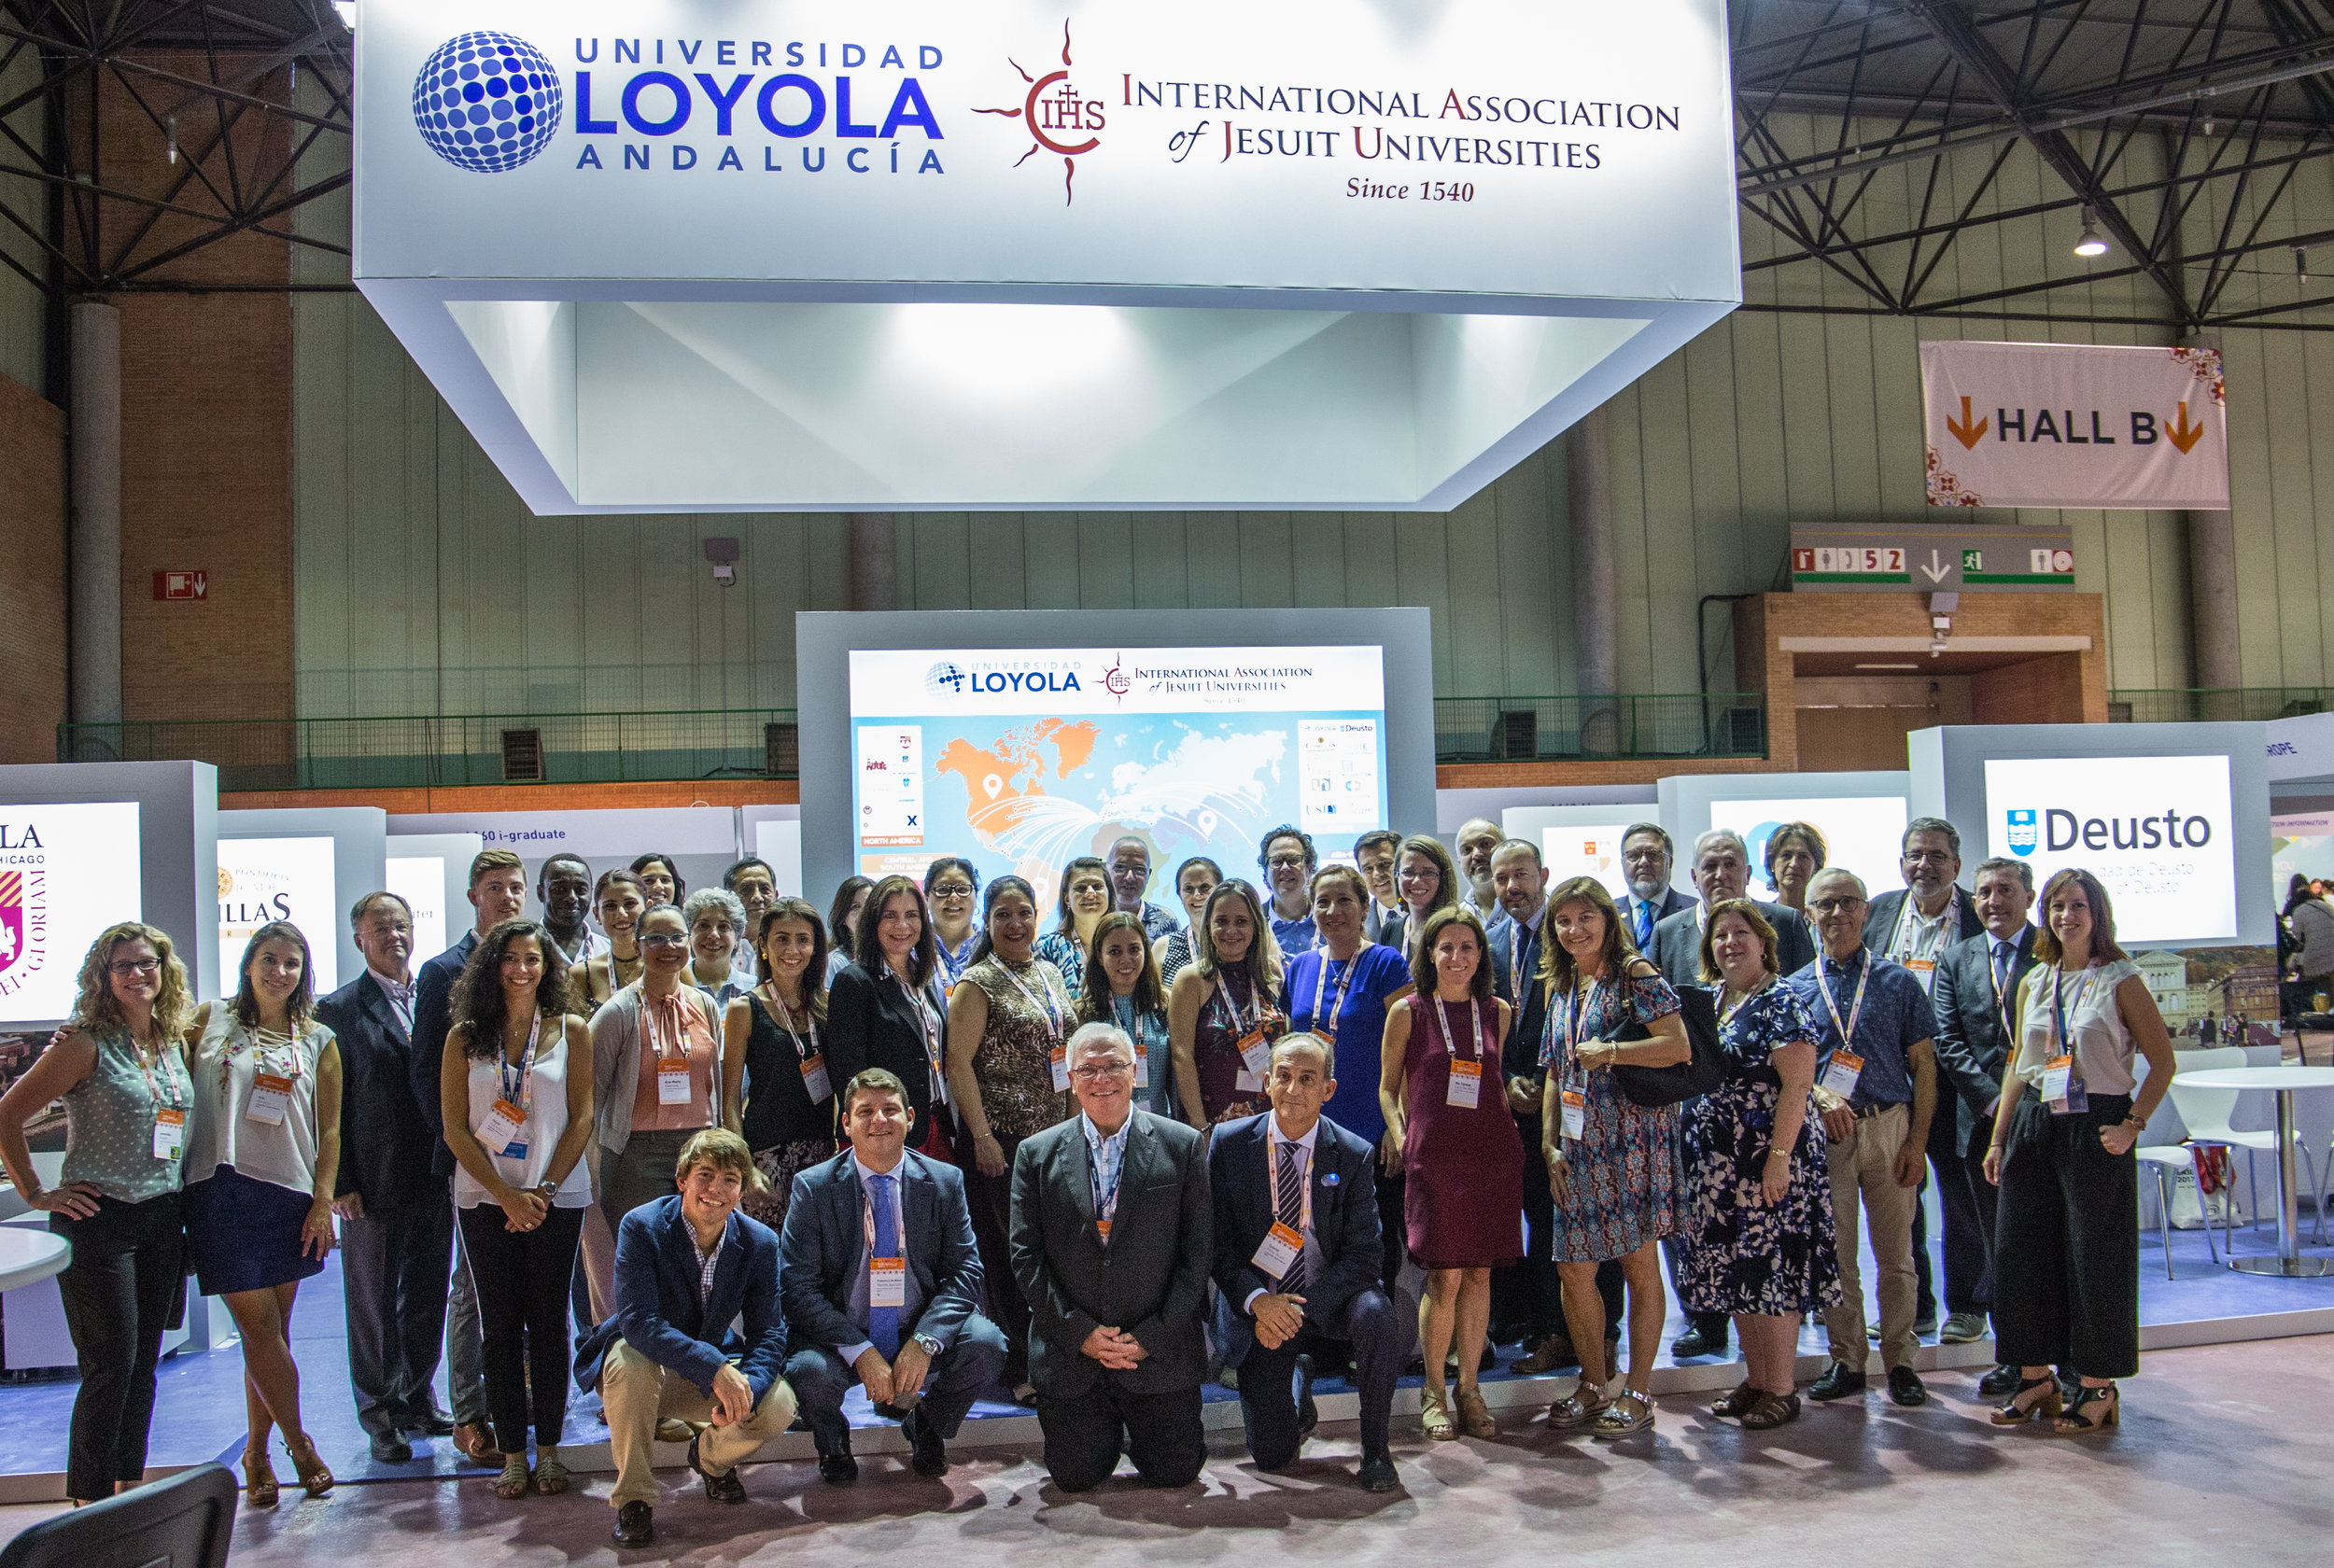 Students and administrators from Loyola University Andalusia at EAIE 2017.